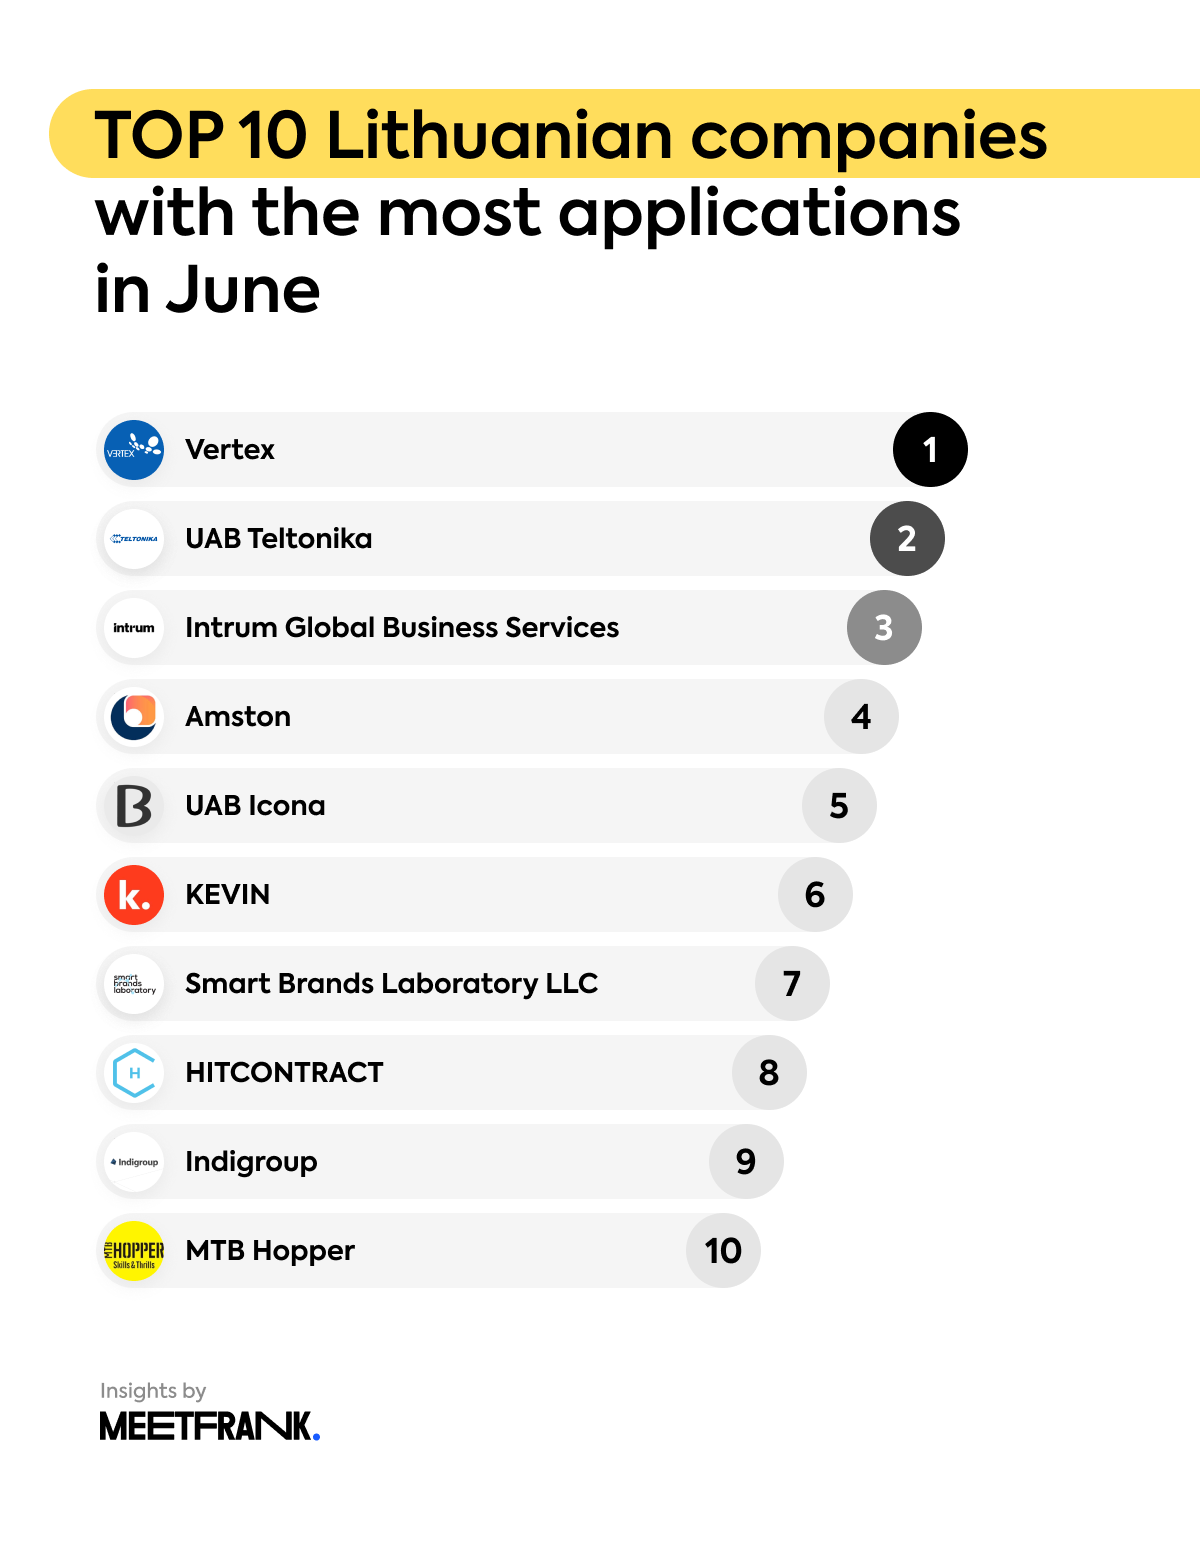 Top 10 Lithuanian companies with the most applications in June